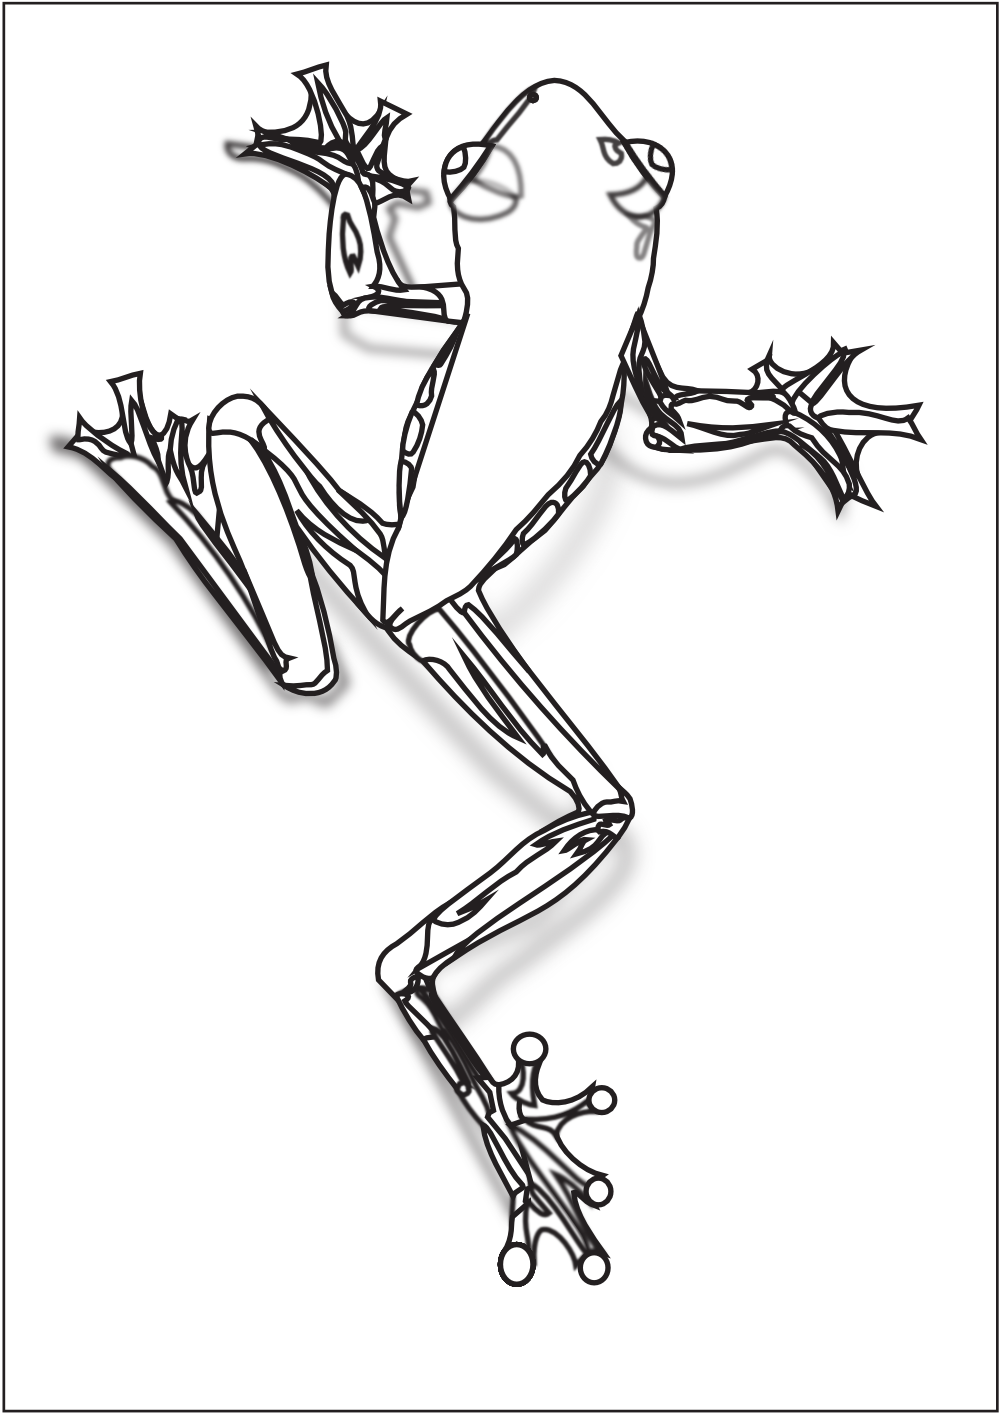 treefrog coloring pages Pinterest Frogs, Tree frogs